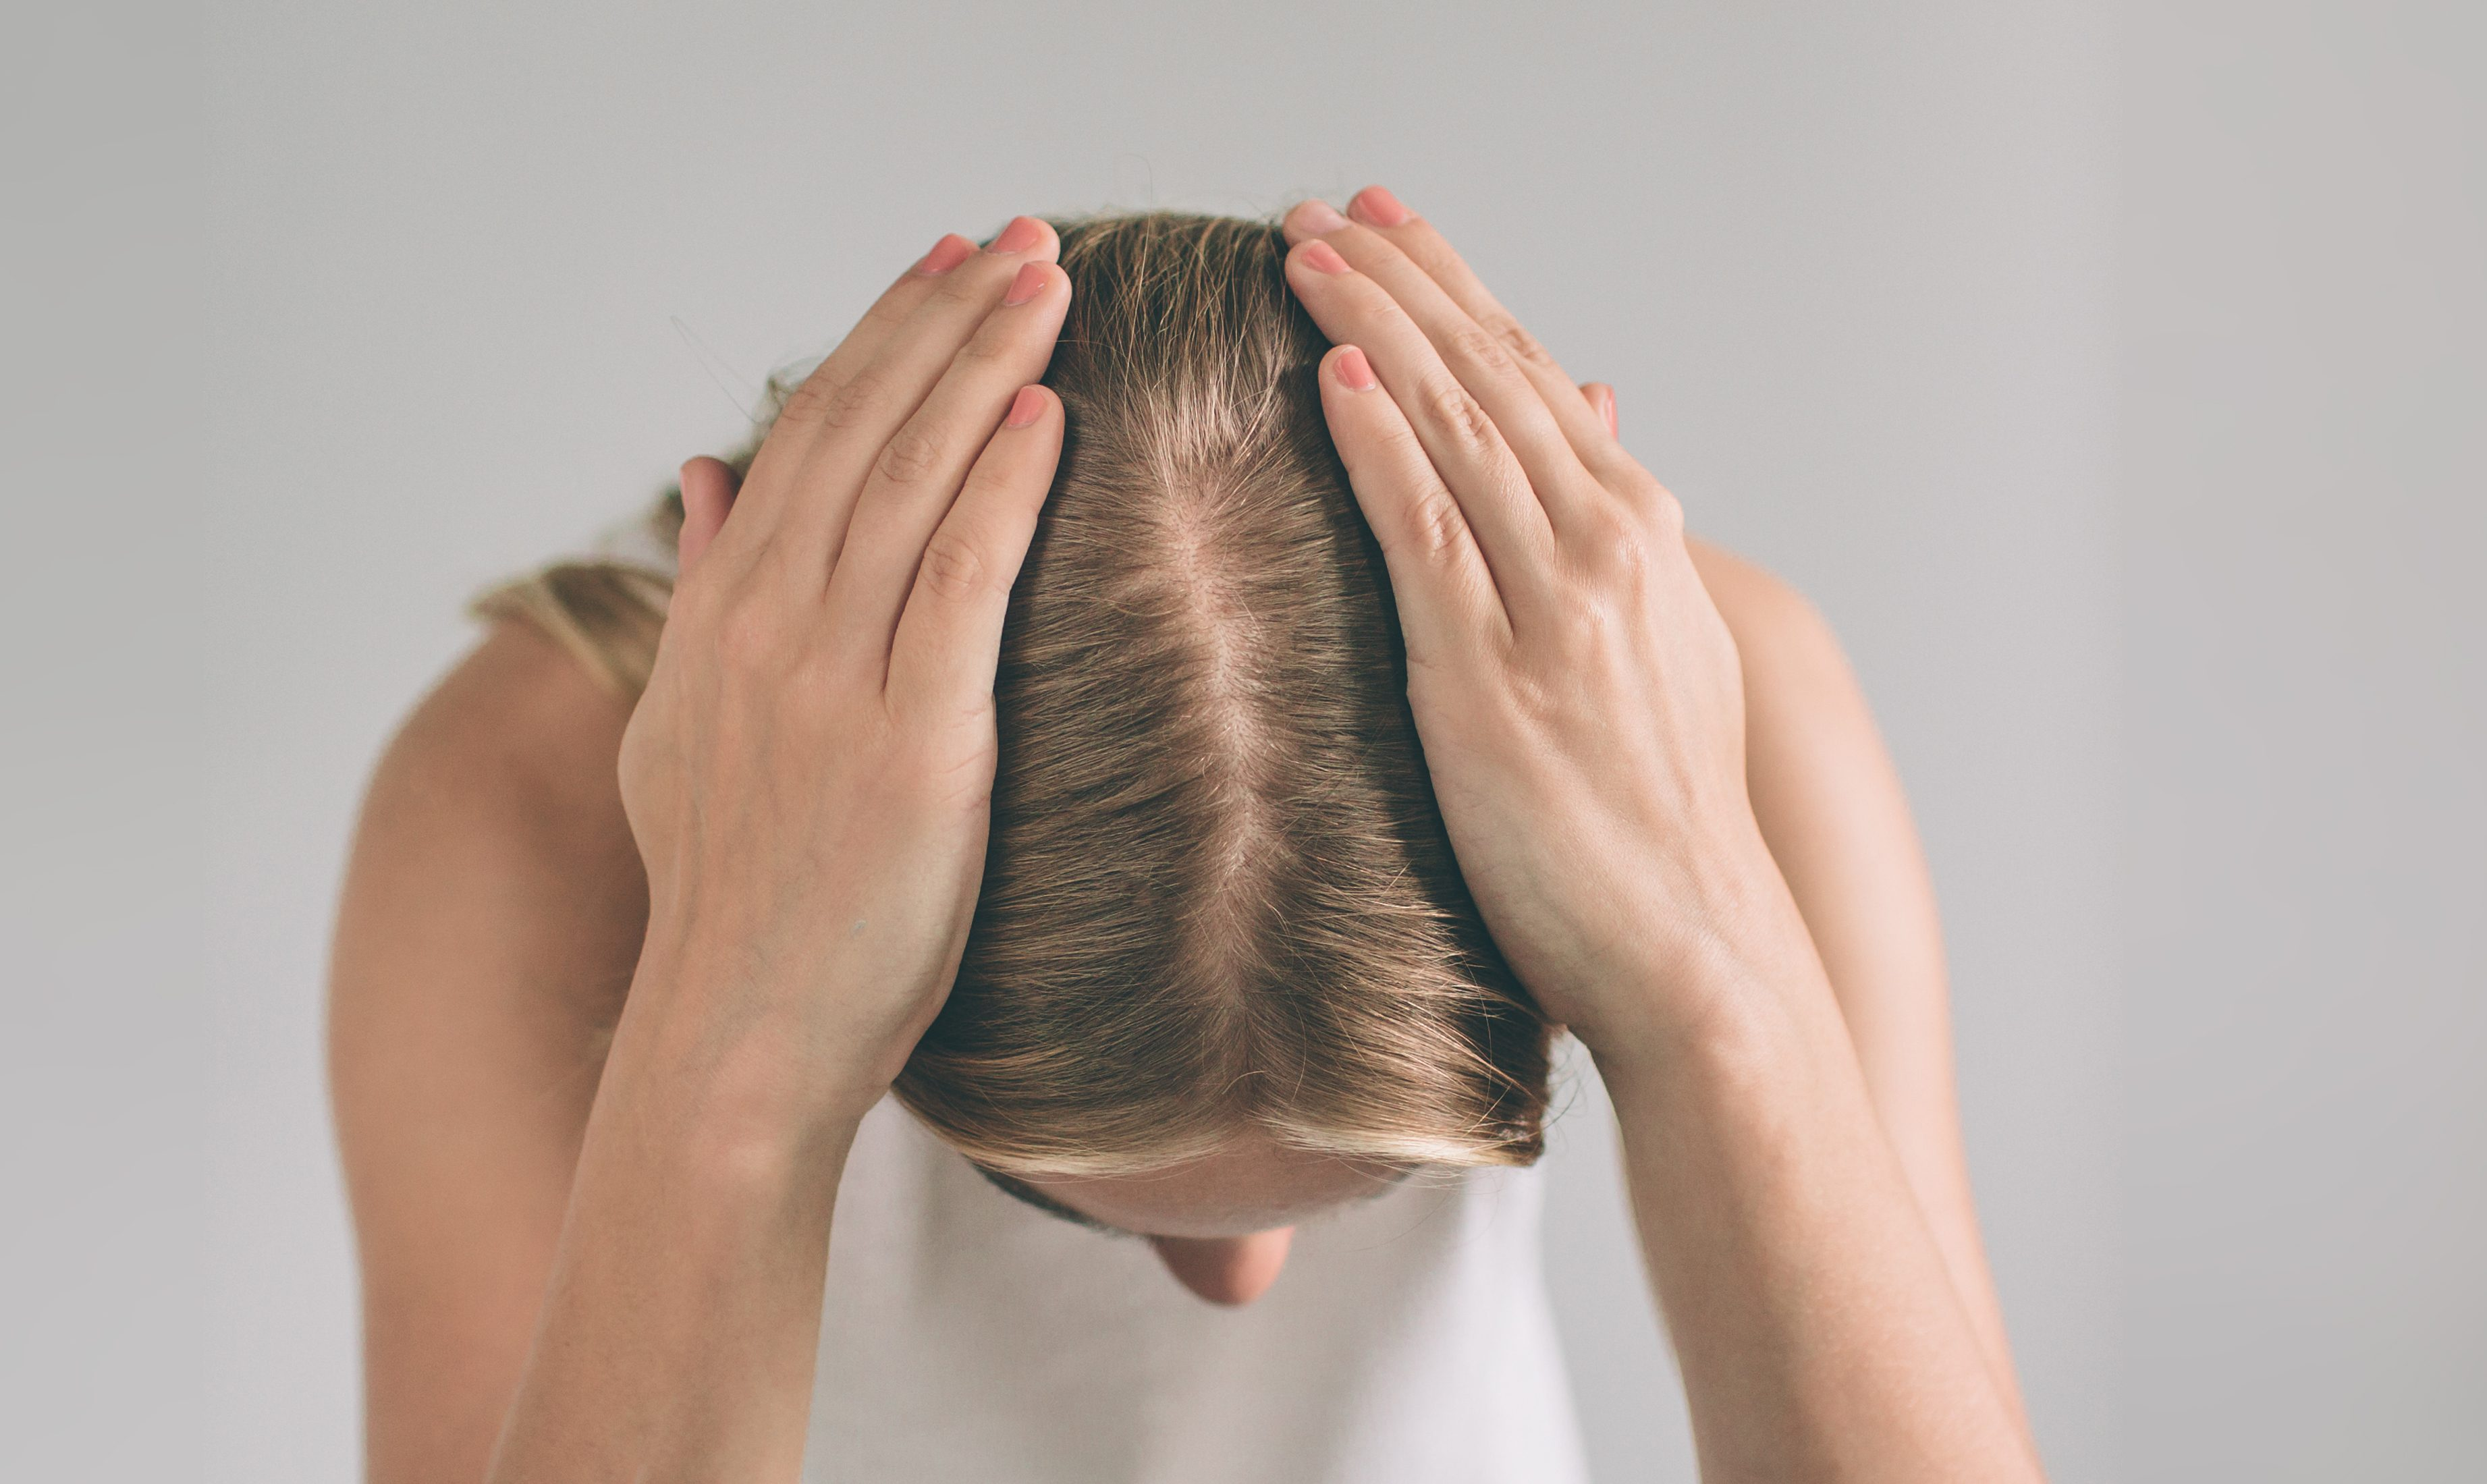 Home Remedies For Lice That Really Work | The Healthy